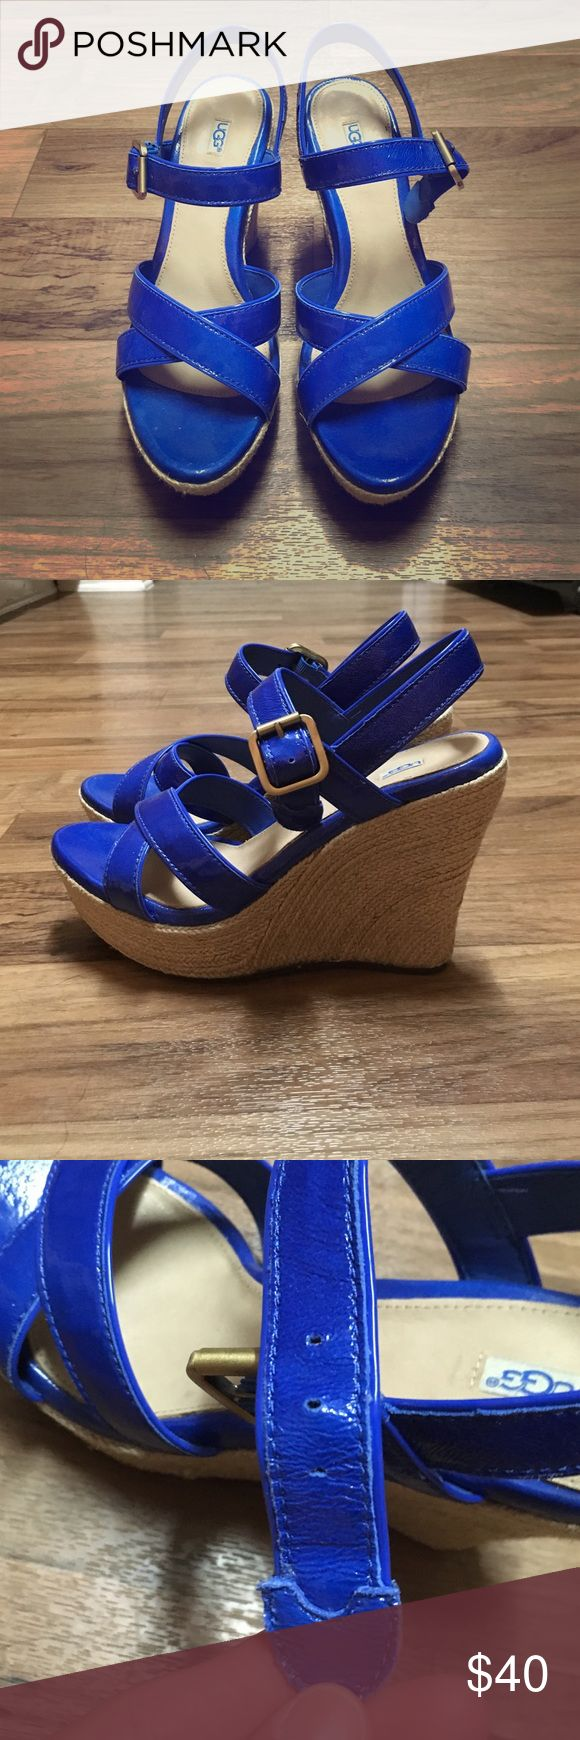 Ugg royal blue wedges 7.5 Ugg Royal blue wedges 7.5. Very gently used! UGG Shoes Wedges